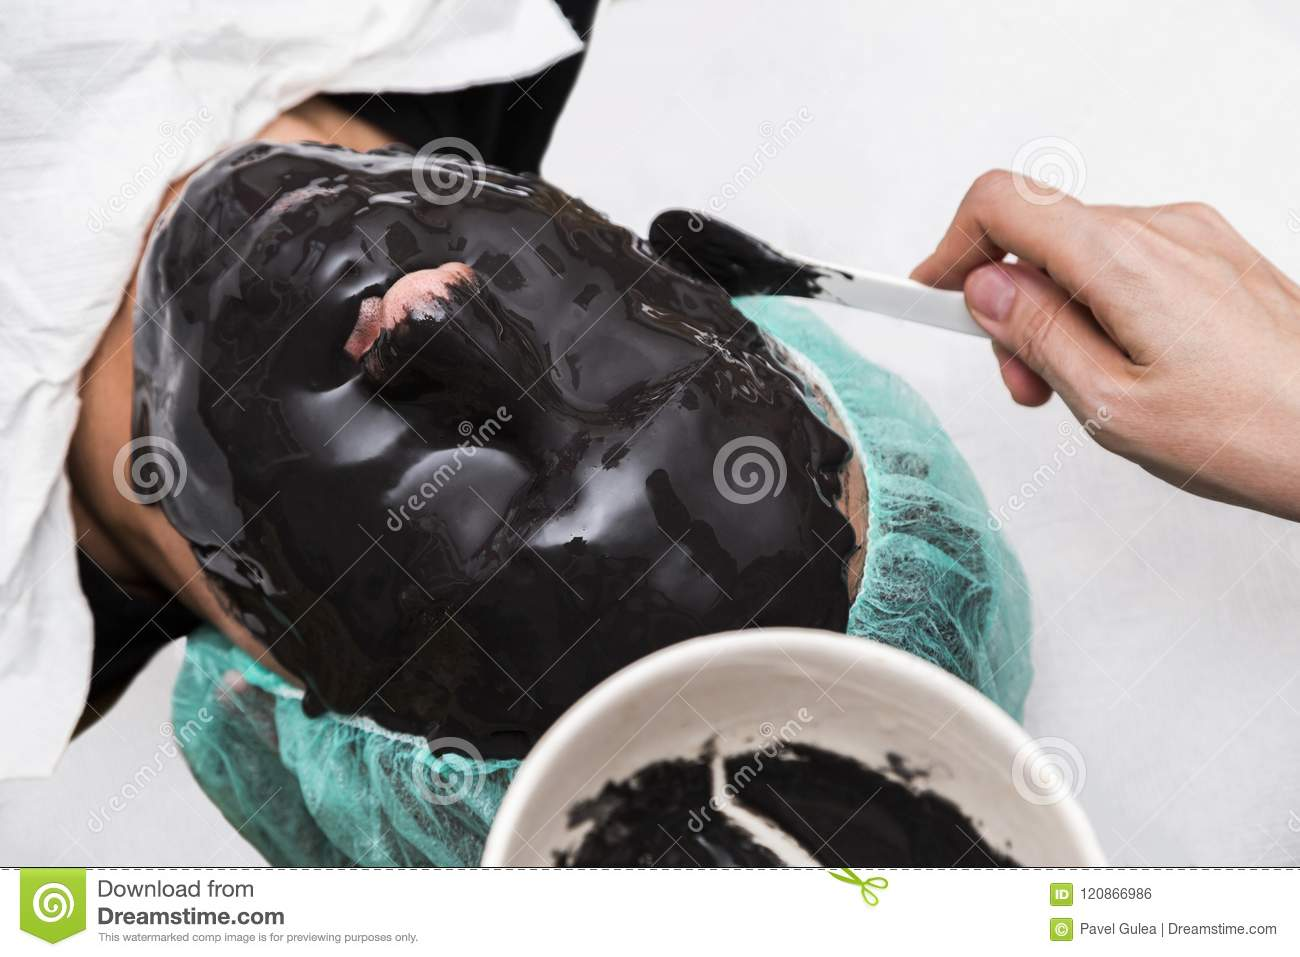 Beauty doctor apply skin alginate seaweed black mask to male patient face